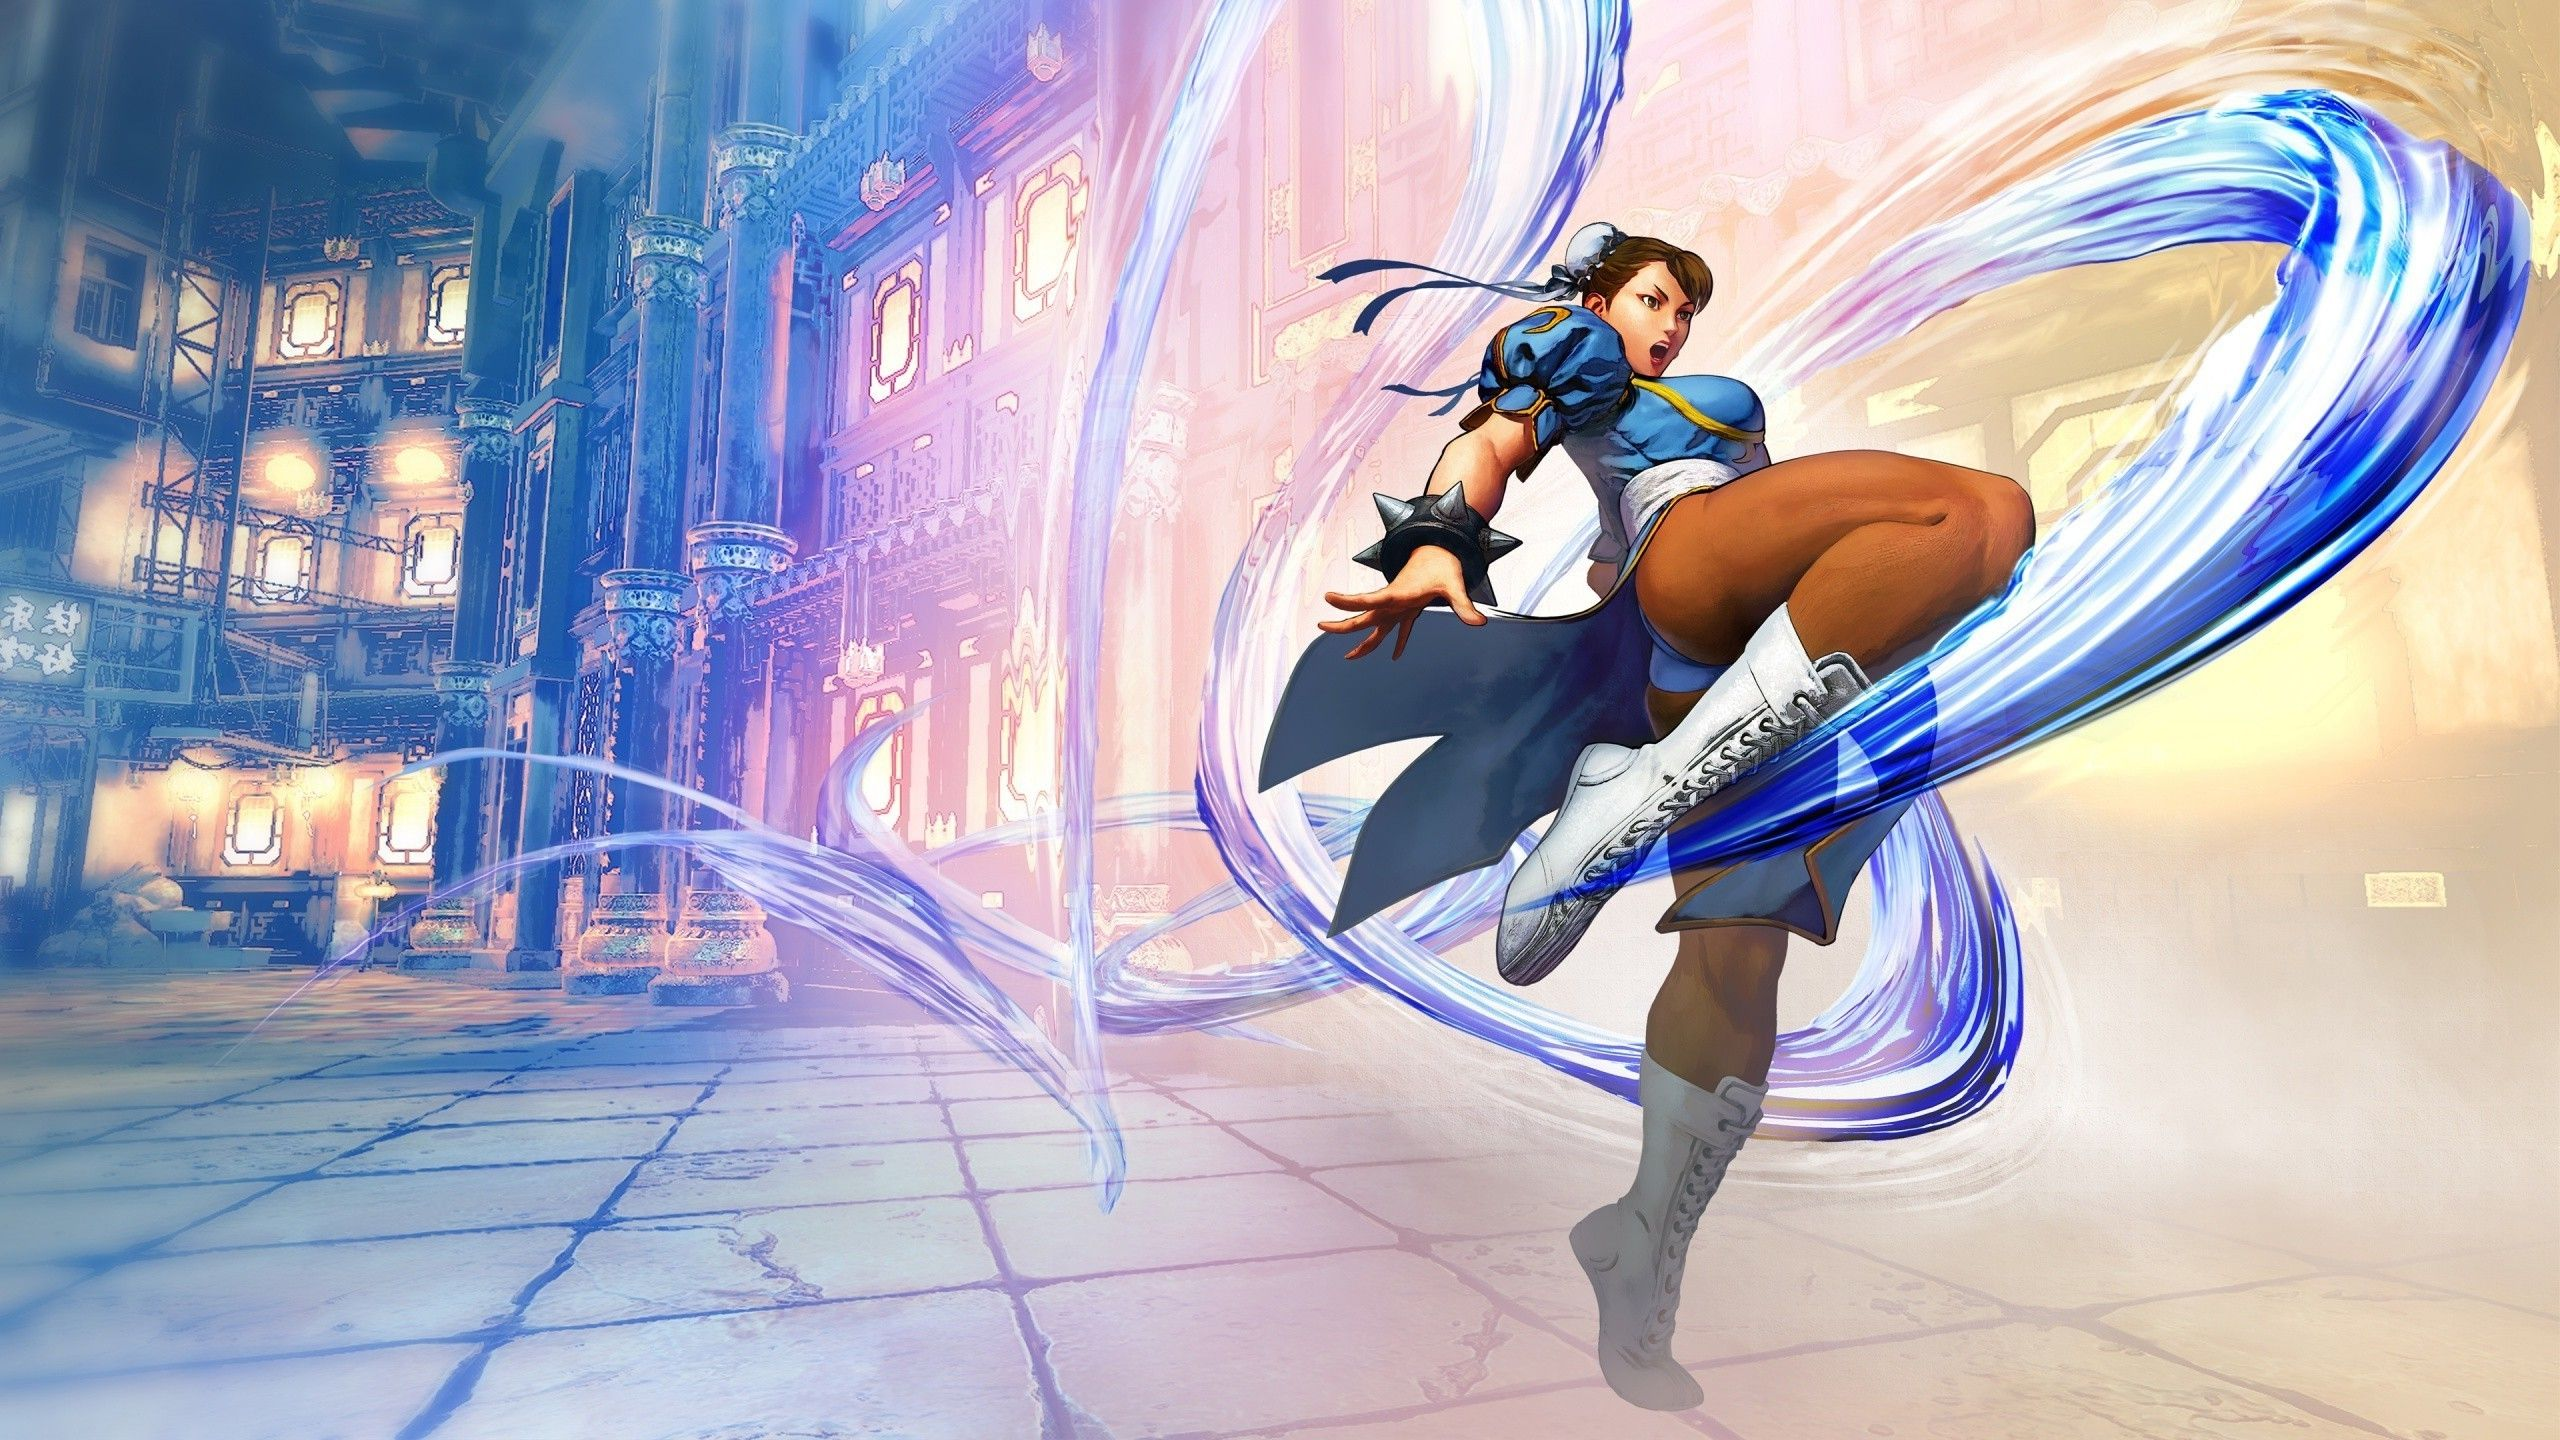 2560x1440 Video Games Video Game Girls Chun Li Street